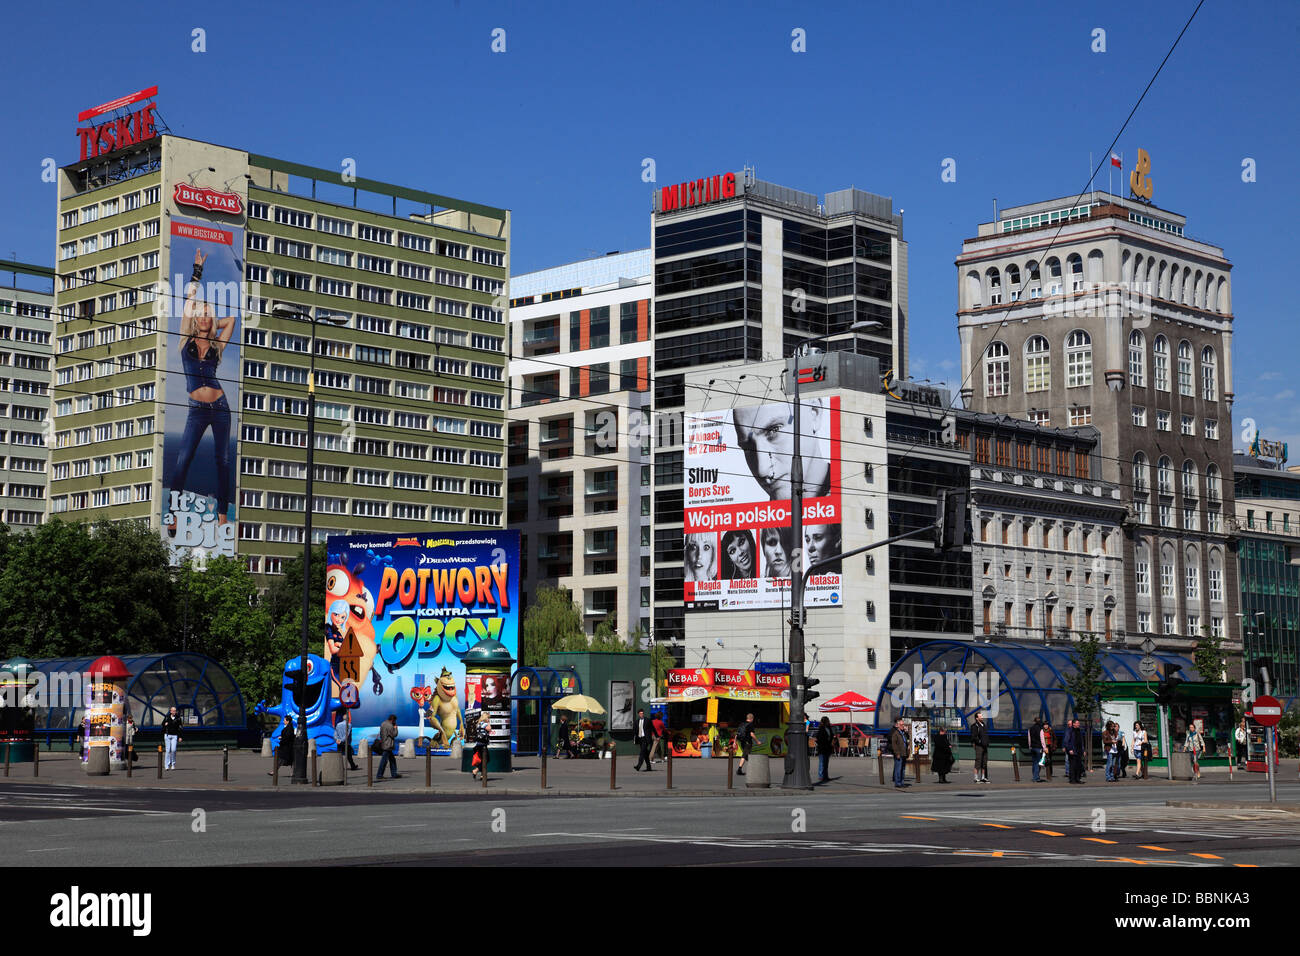 Poland Warsaw downtown financial district street scene - Stock Image